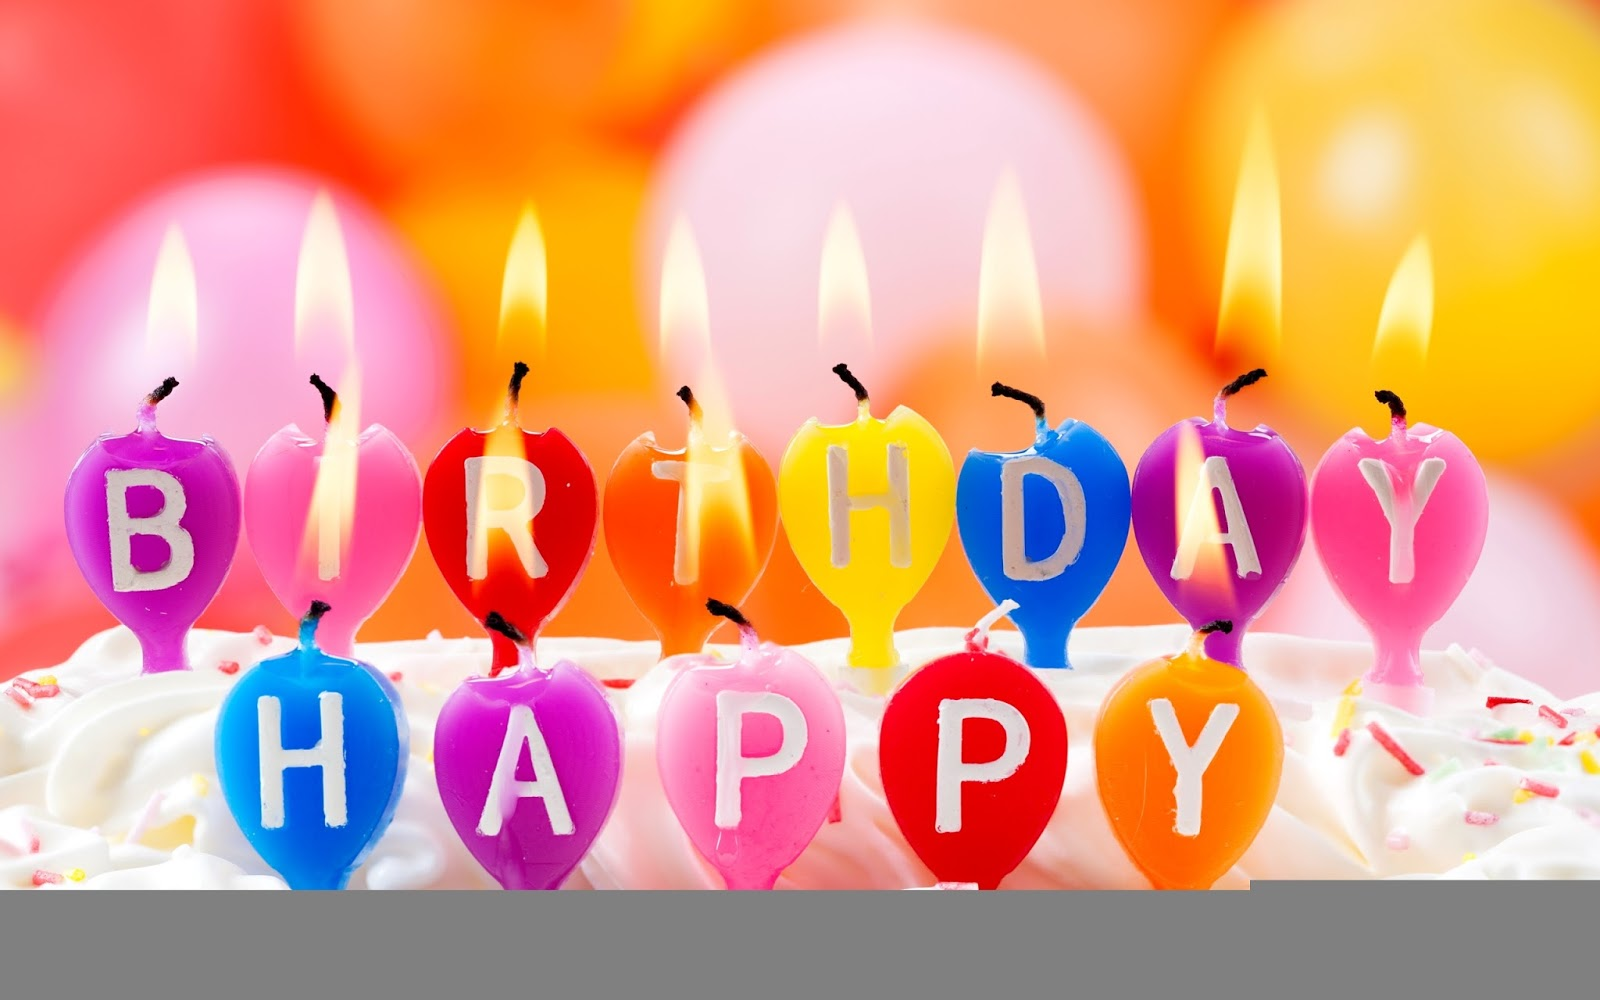 Happy Birthday Wishes Sms Full Hd Pictures 4k Ultra Full